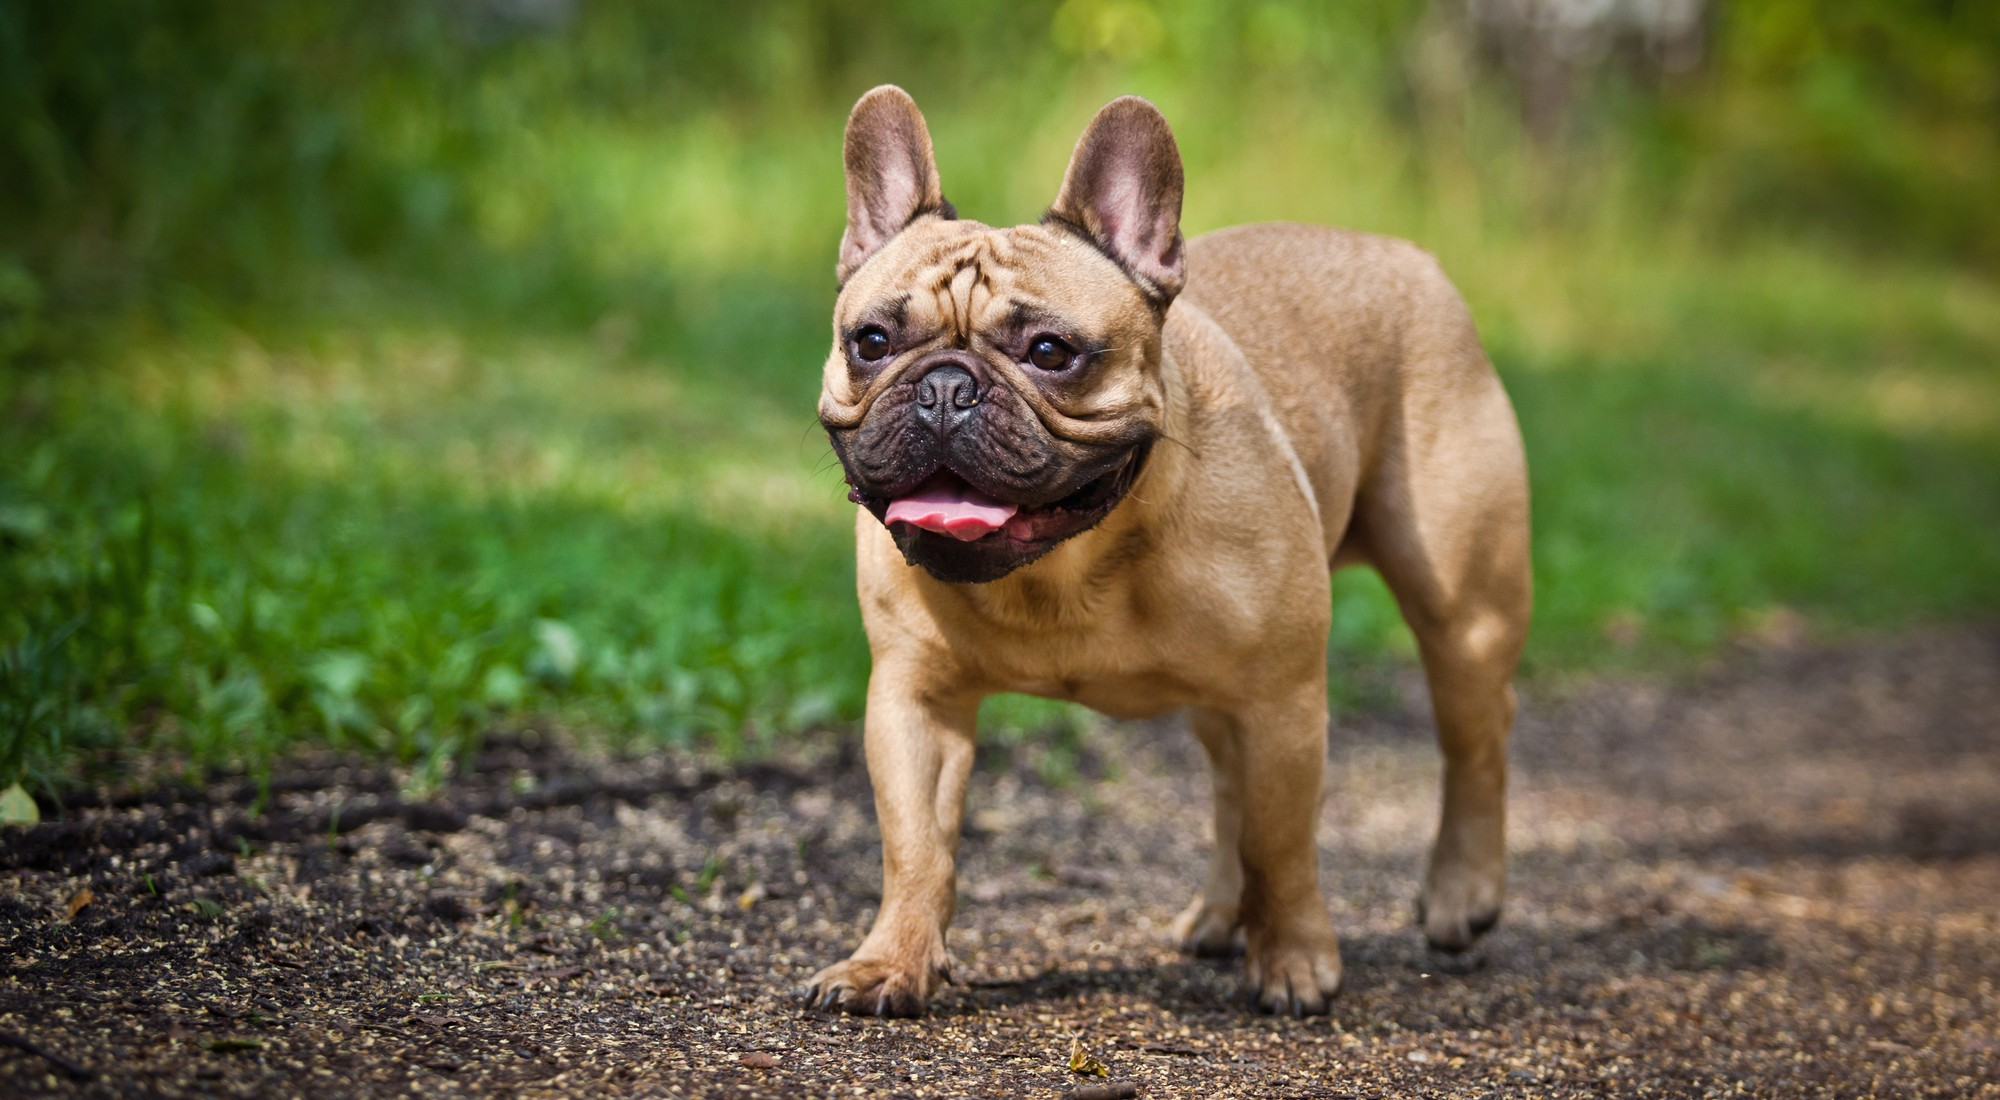 Precious Care Advice French Dog Breeds Starting About Us French Bulldog Breed History S French Dog Breeds Starting F bark post French Dog Breeds